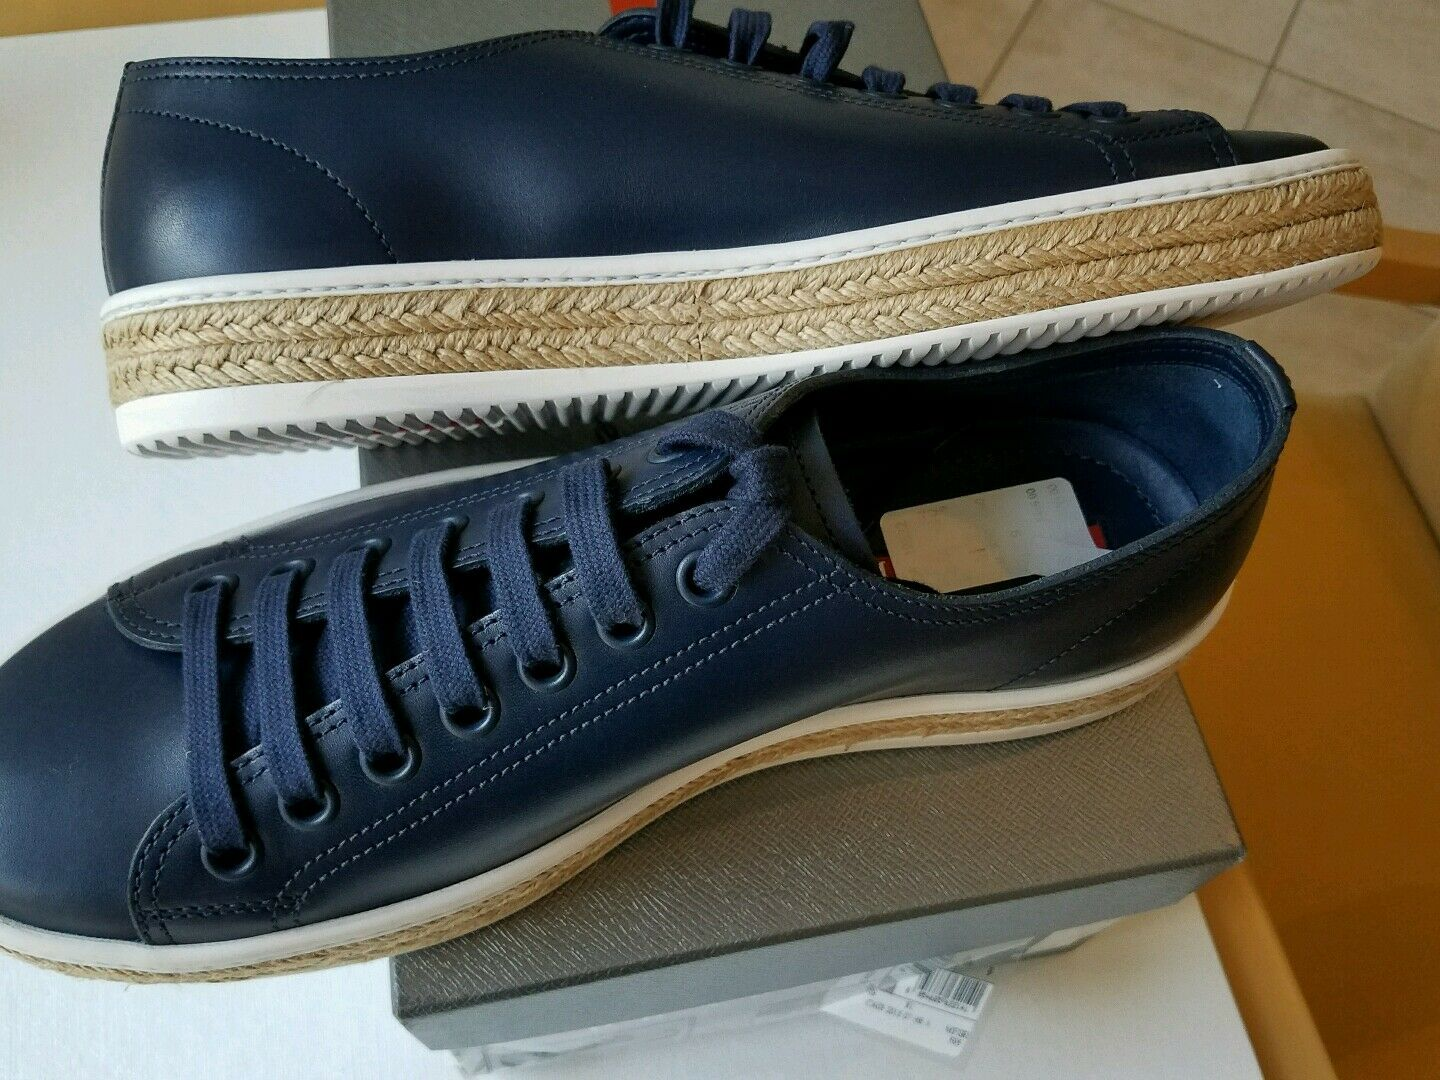 NEW PRADA MEN'S NAVY LEATHER ESPADRILLE SNEAKER TRAINER SHOE  US 10 PRADA 9